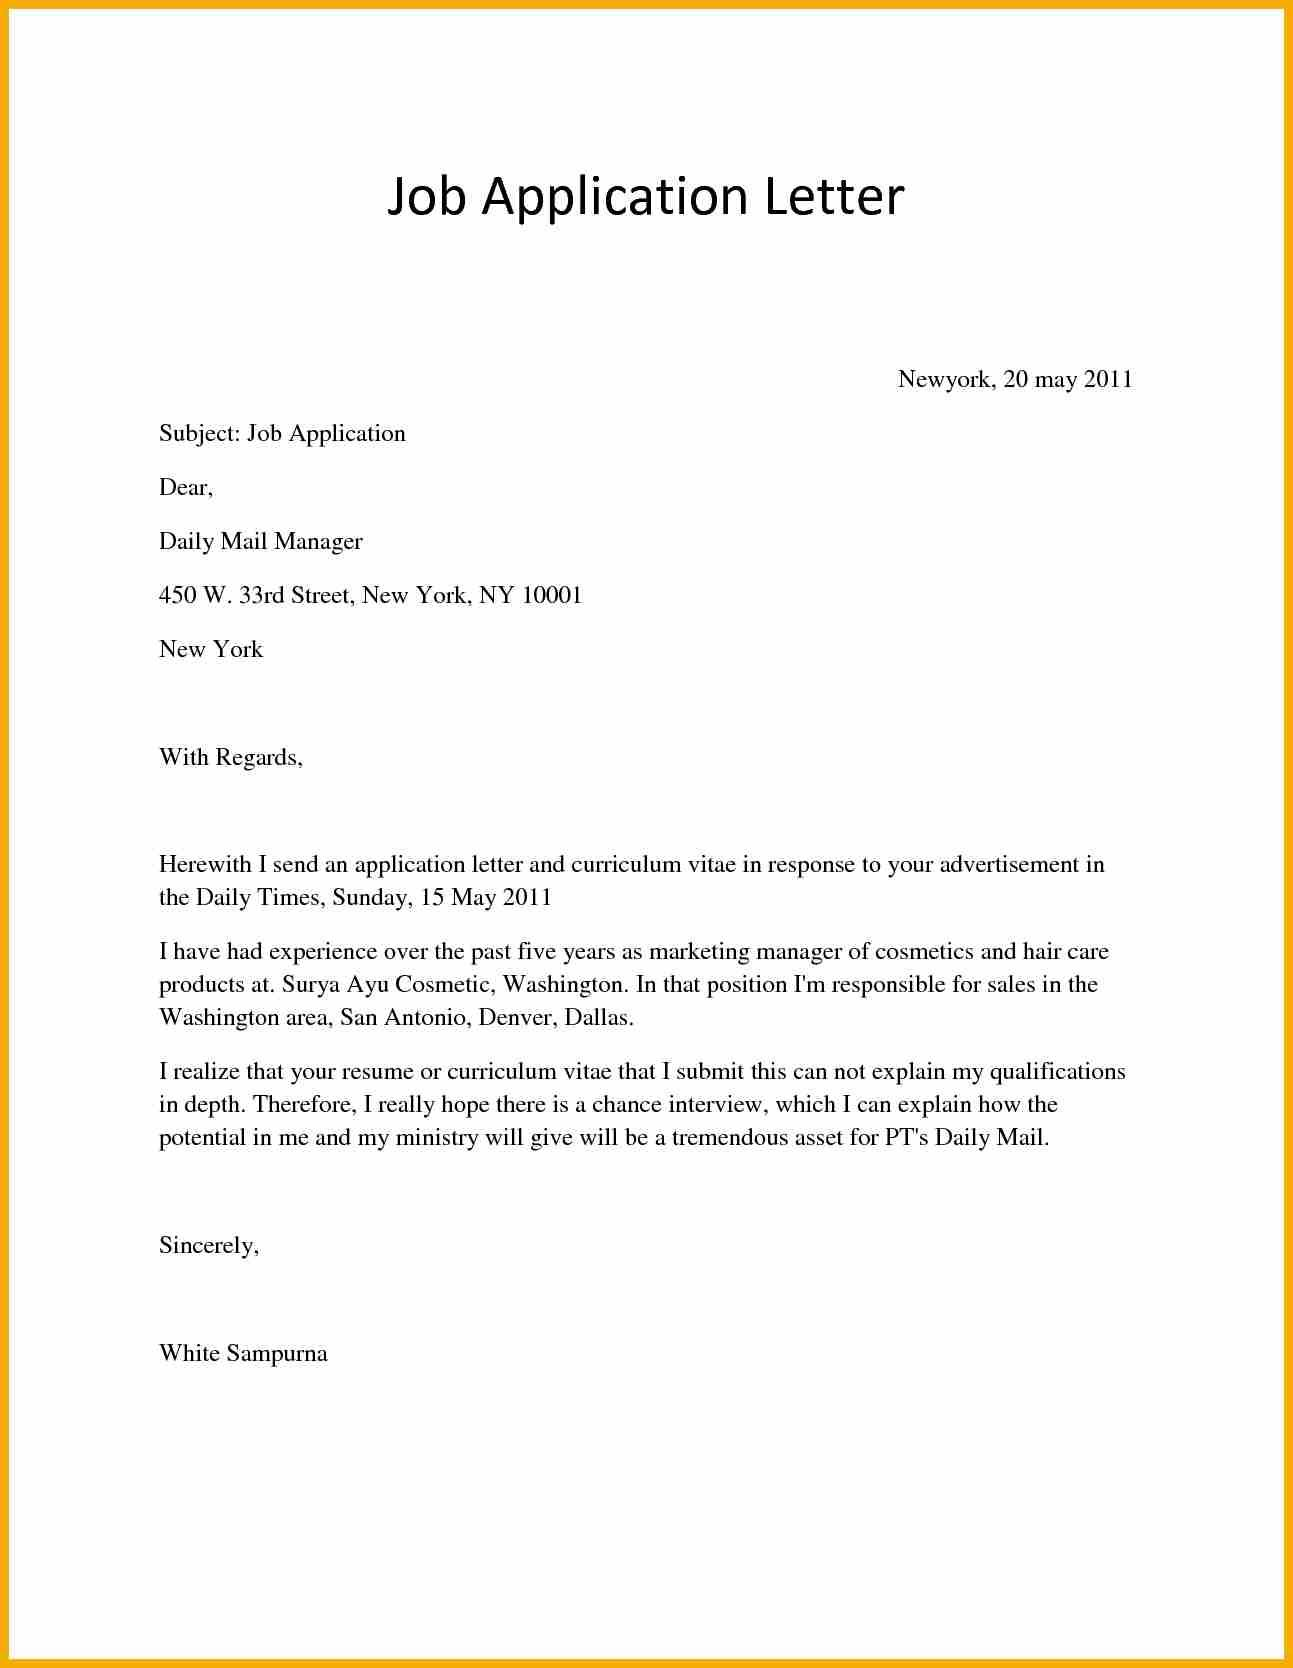 opinion essay vocabulary  Letters from job you get an internal position to  recruit for which my enthusiastic application letter